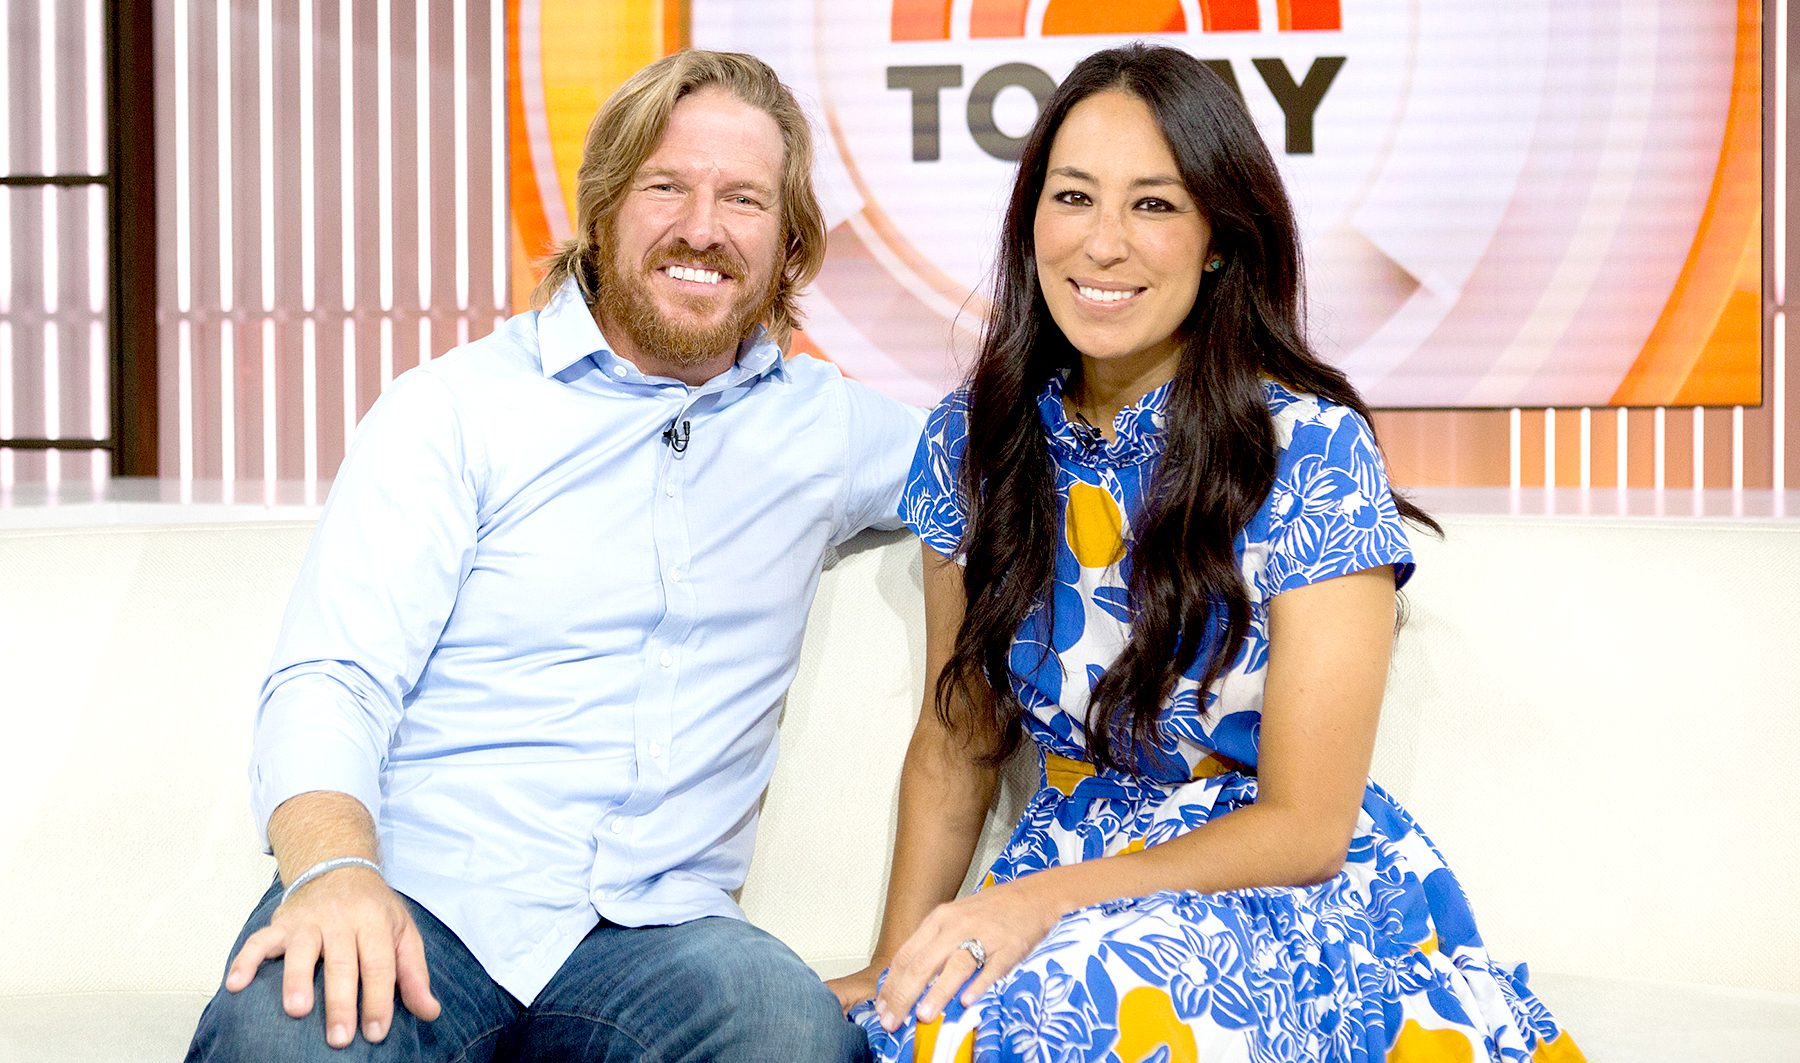 'Fixer Upper' stars Chip and Joanna Gaines welcome baby No. 5